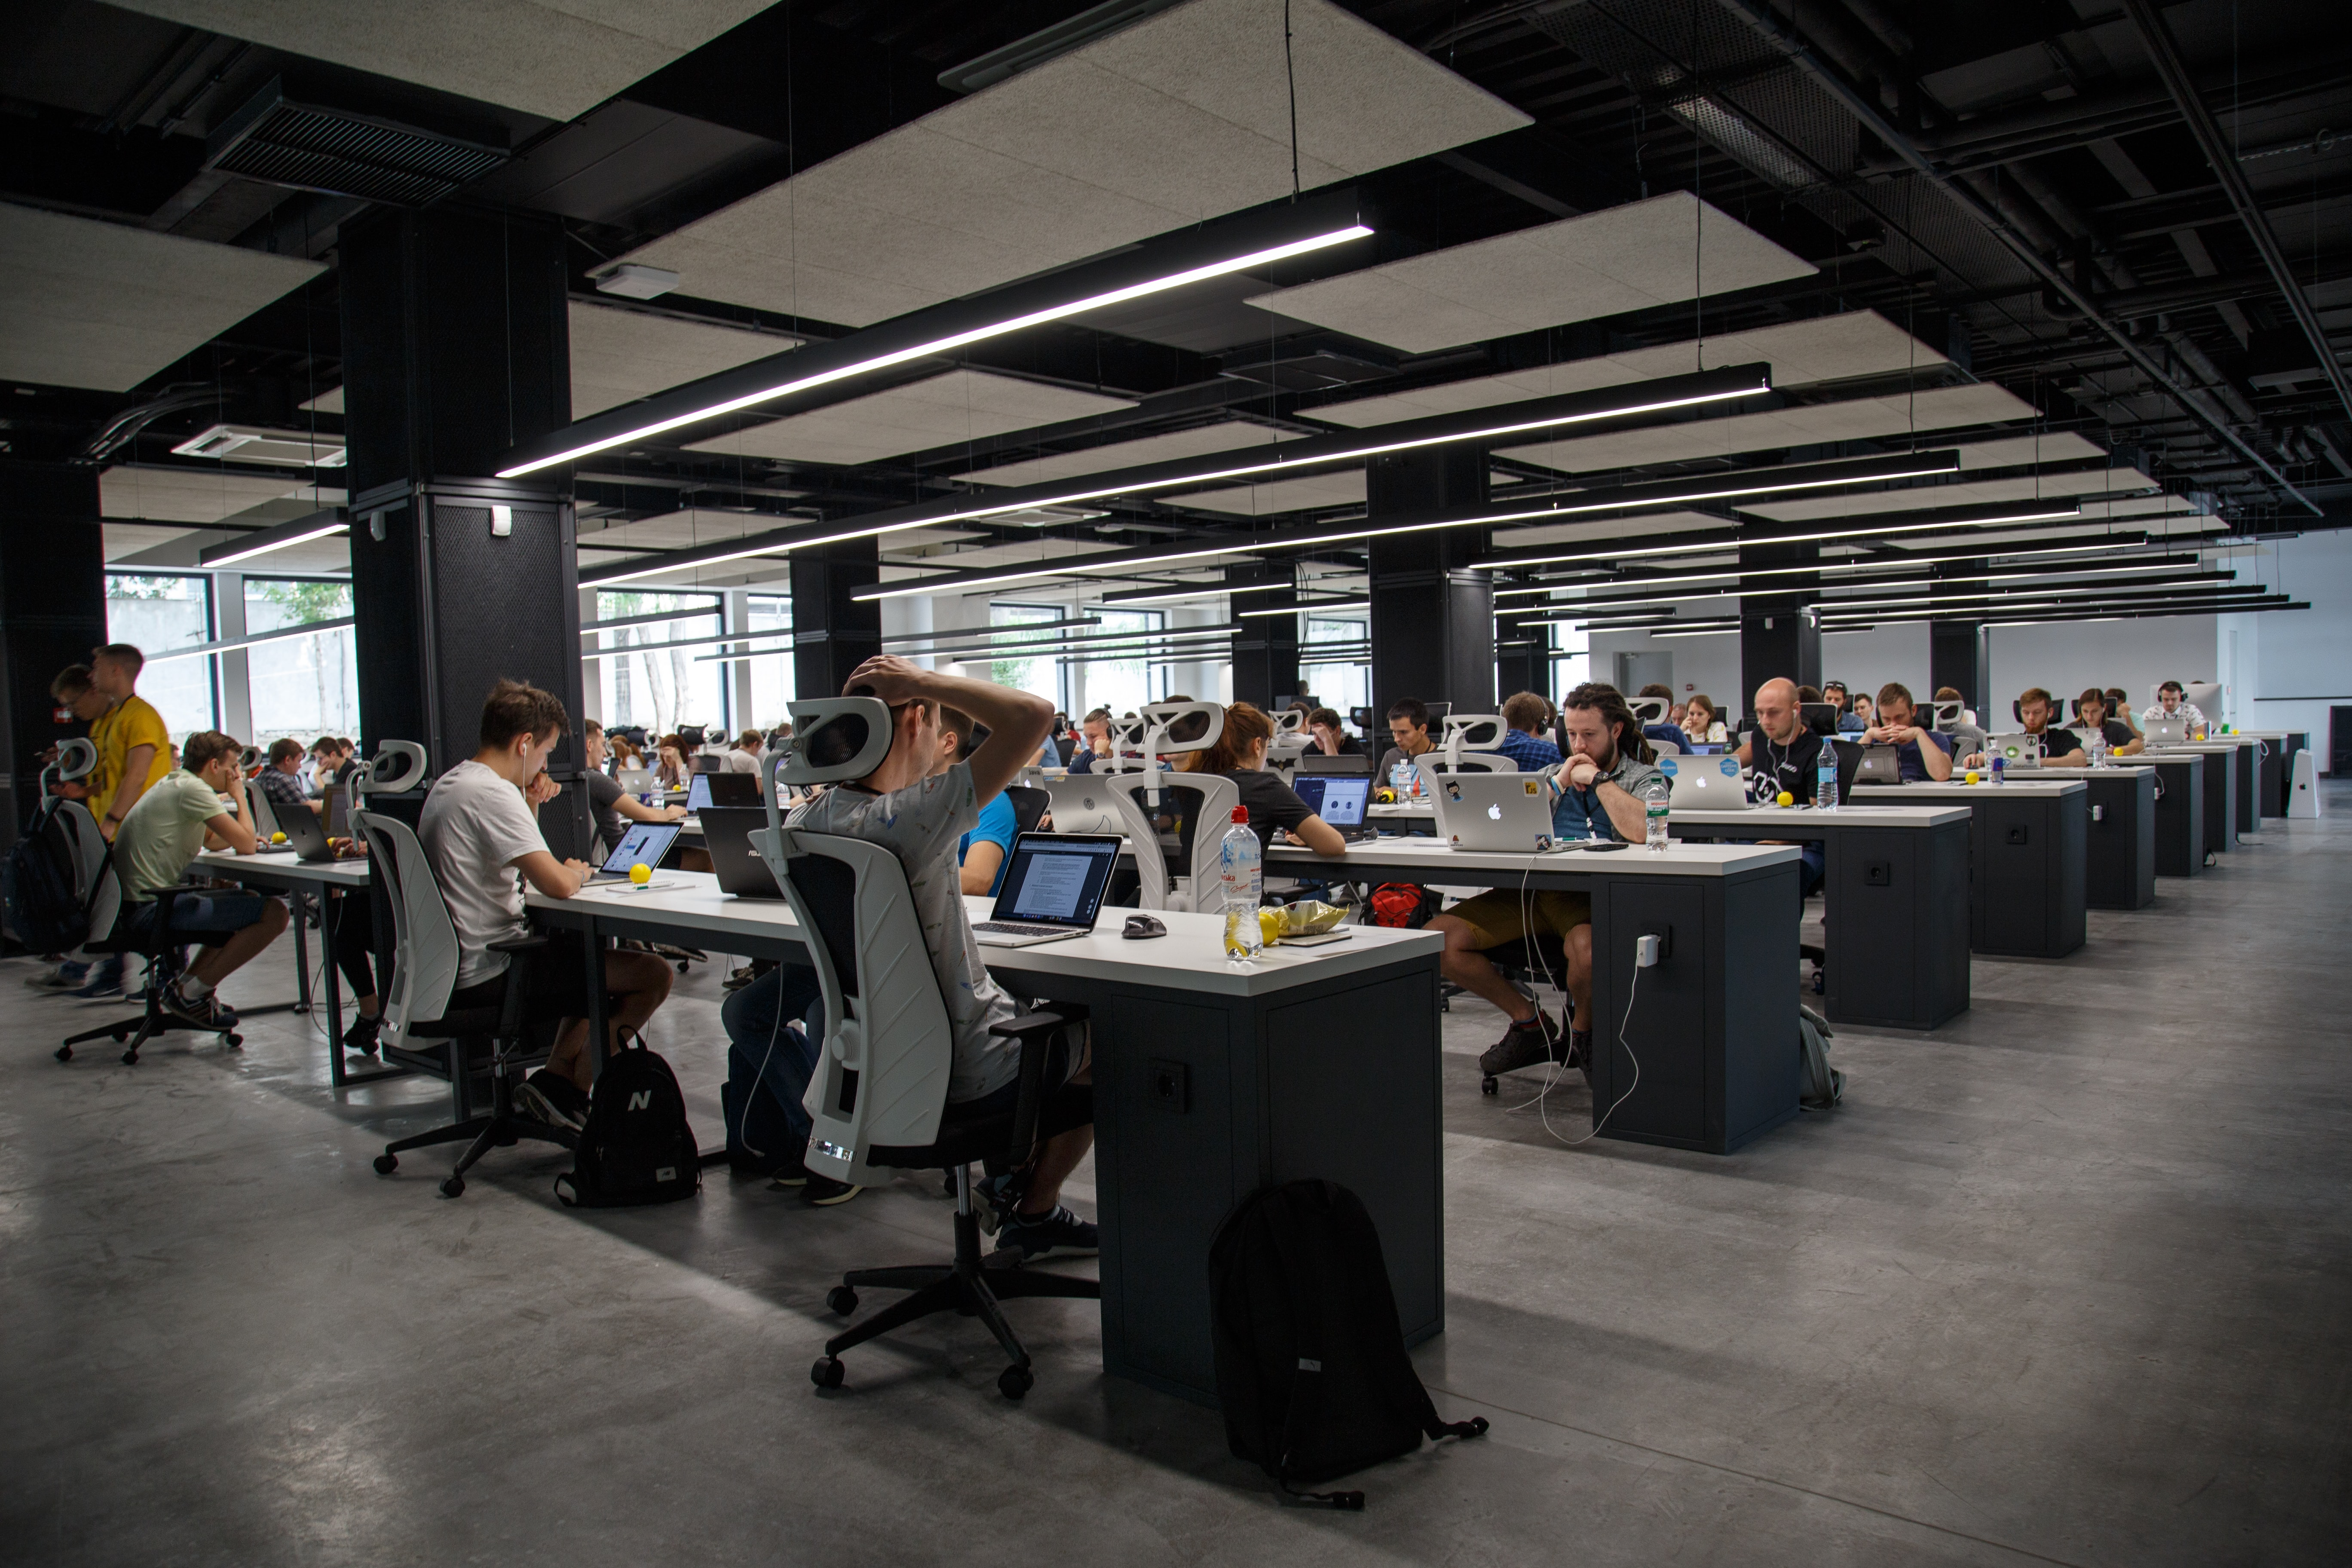 Open plan office space with rows of people working at long desks with no barriers.